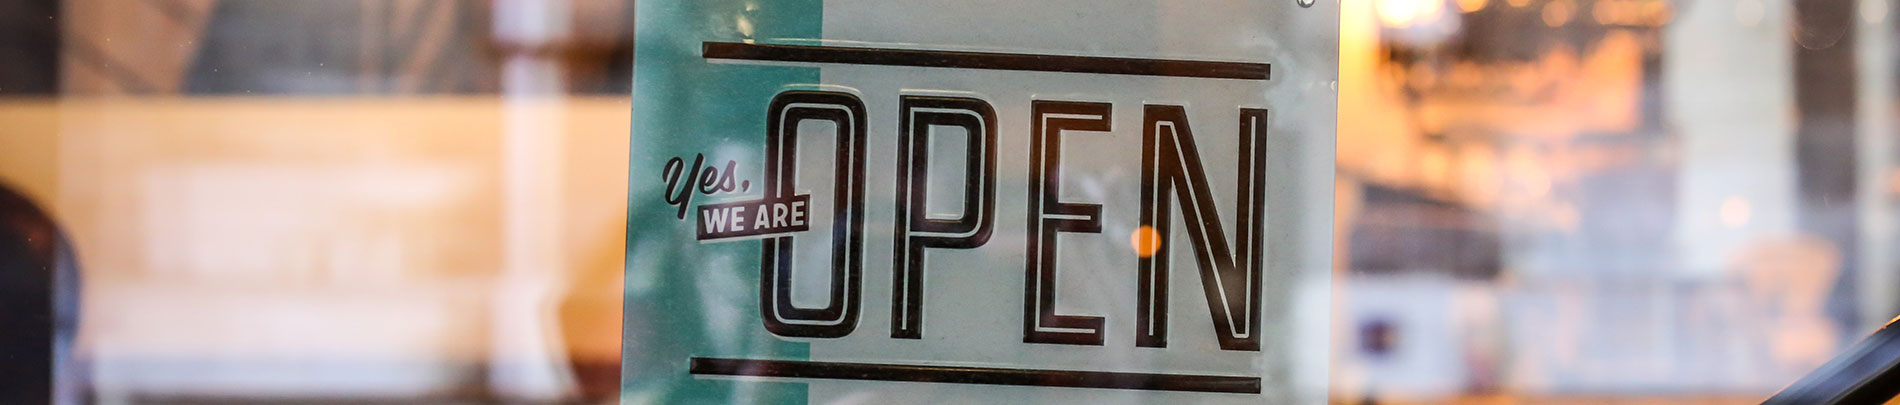 An open sign hanging in a shop window.